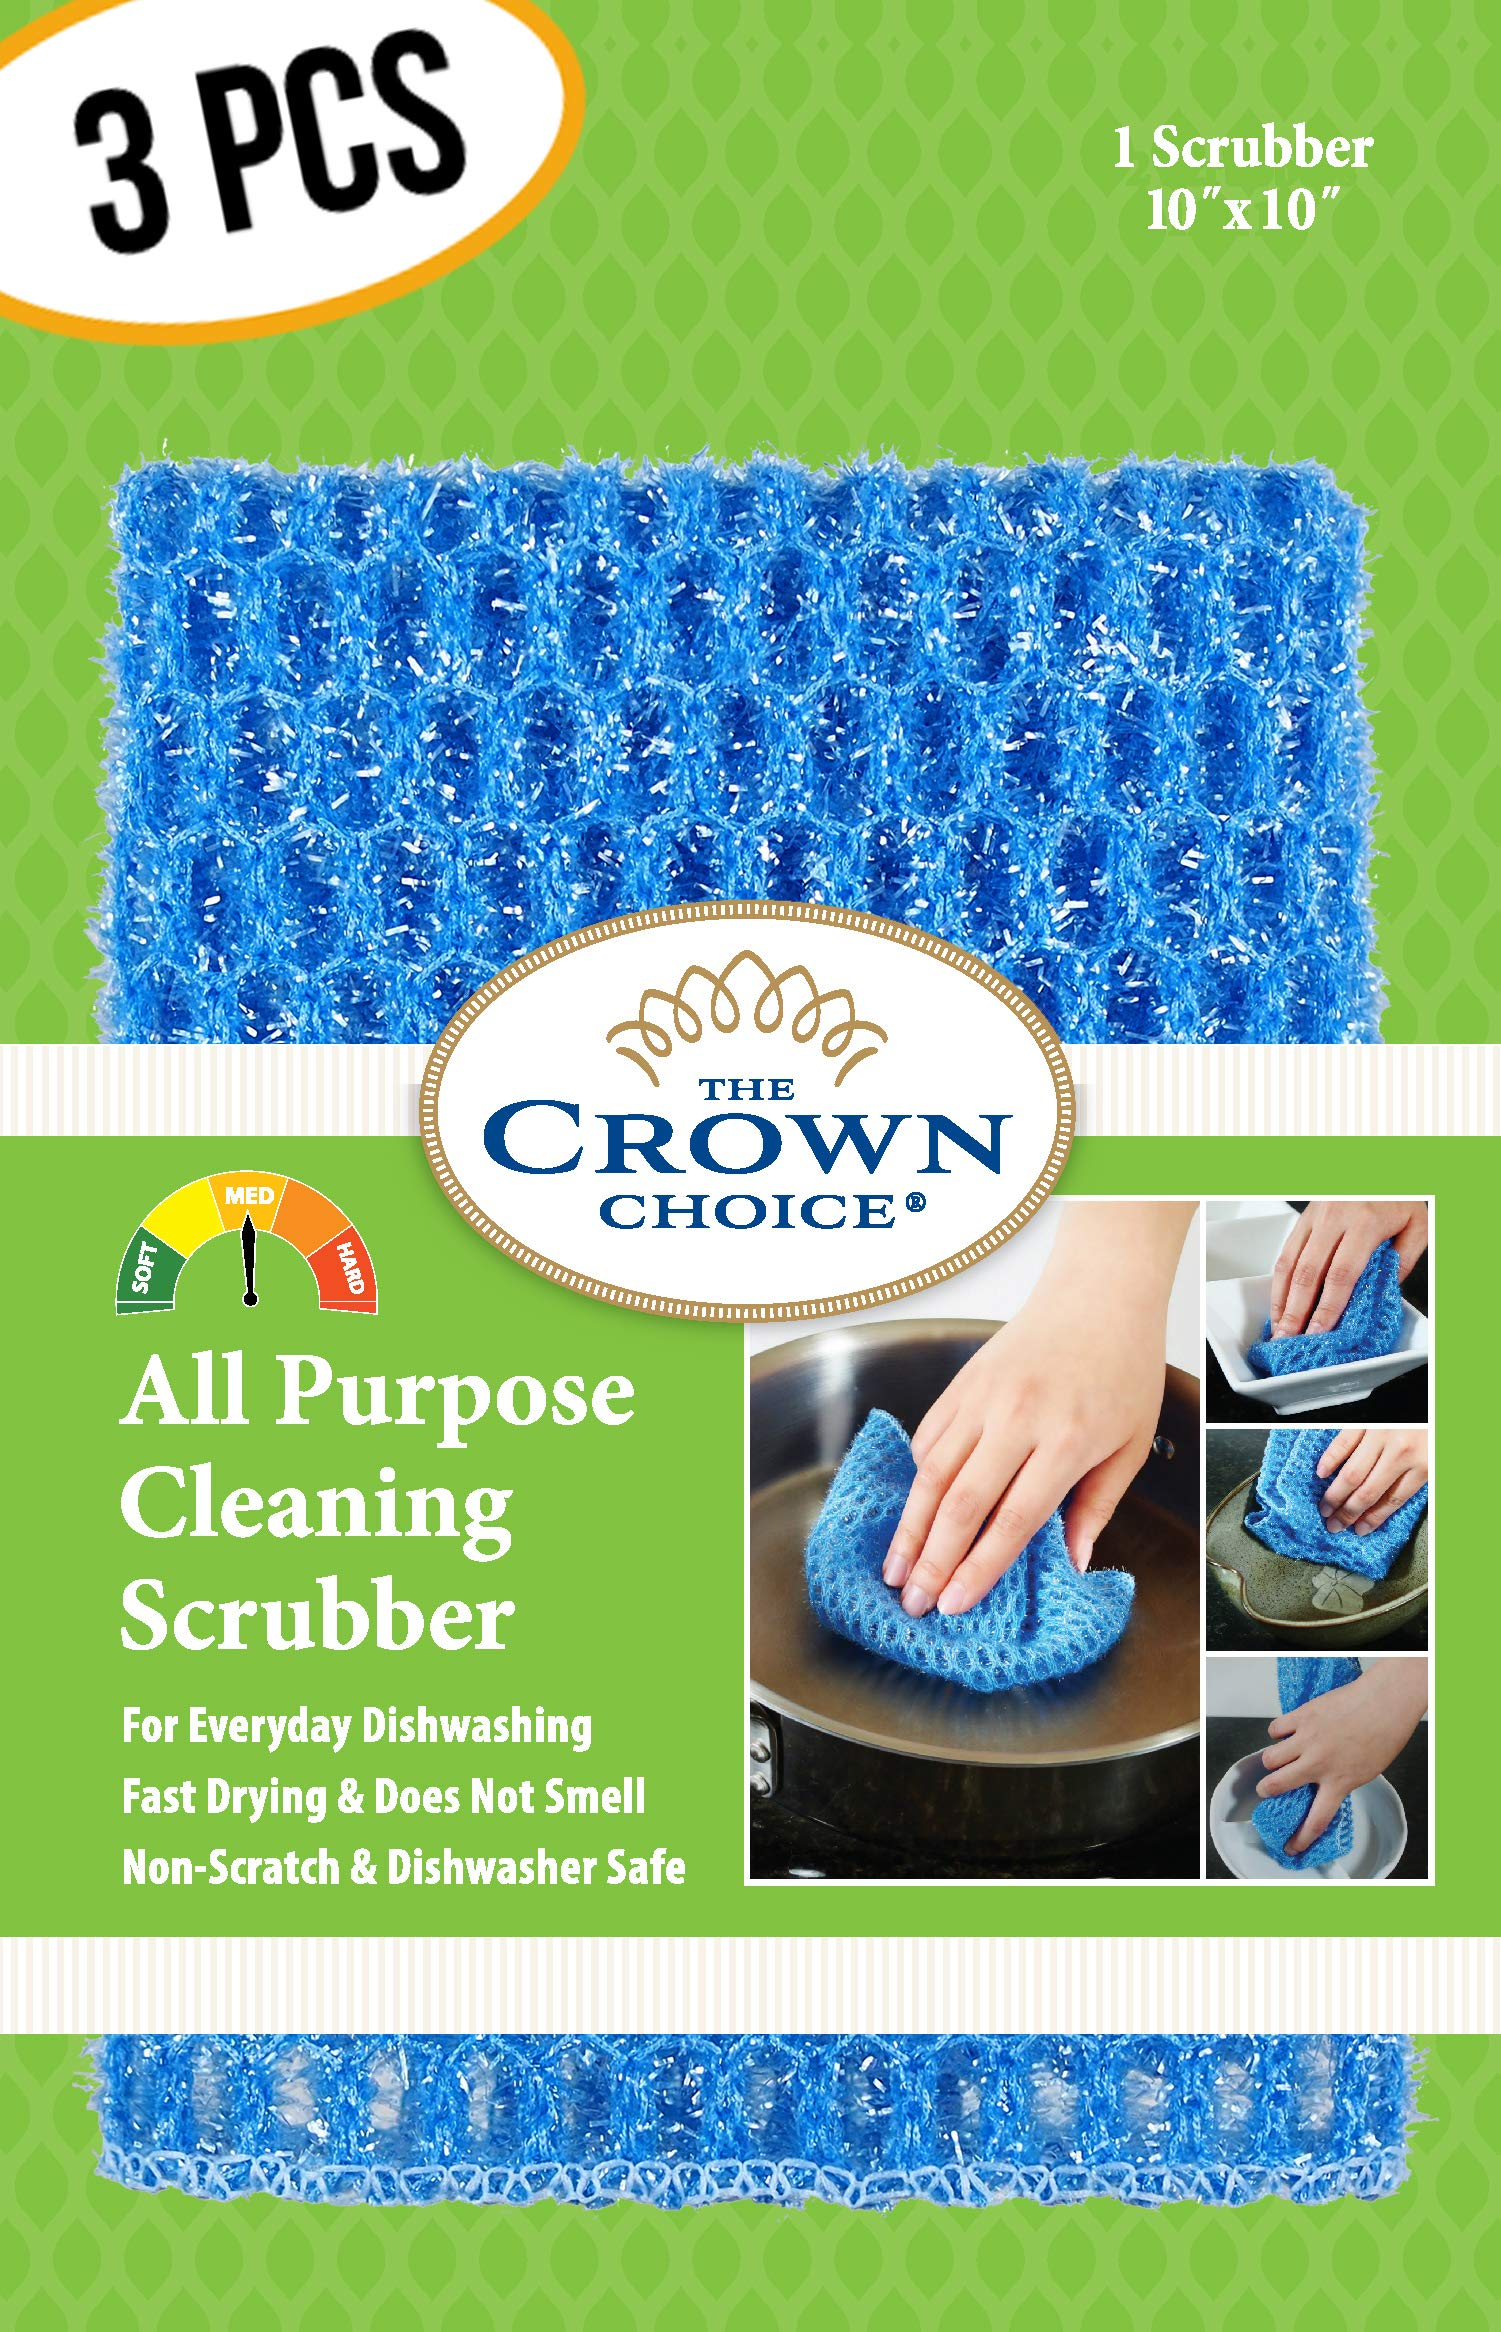 NO ODOR Dish Cloth for All Purpose Dish Washing (3PK) | No Mildew Smell from Sponges, Scrubbers, Wash Cloths, Rags, Brush | Outlast ANY Kitchen Scrubbing Sponge or Cotton Dishcloth by The Crown Choice